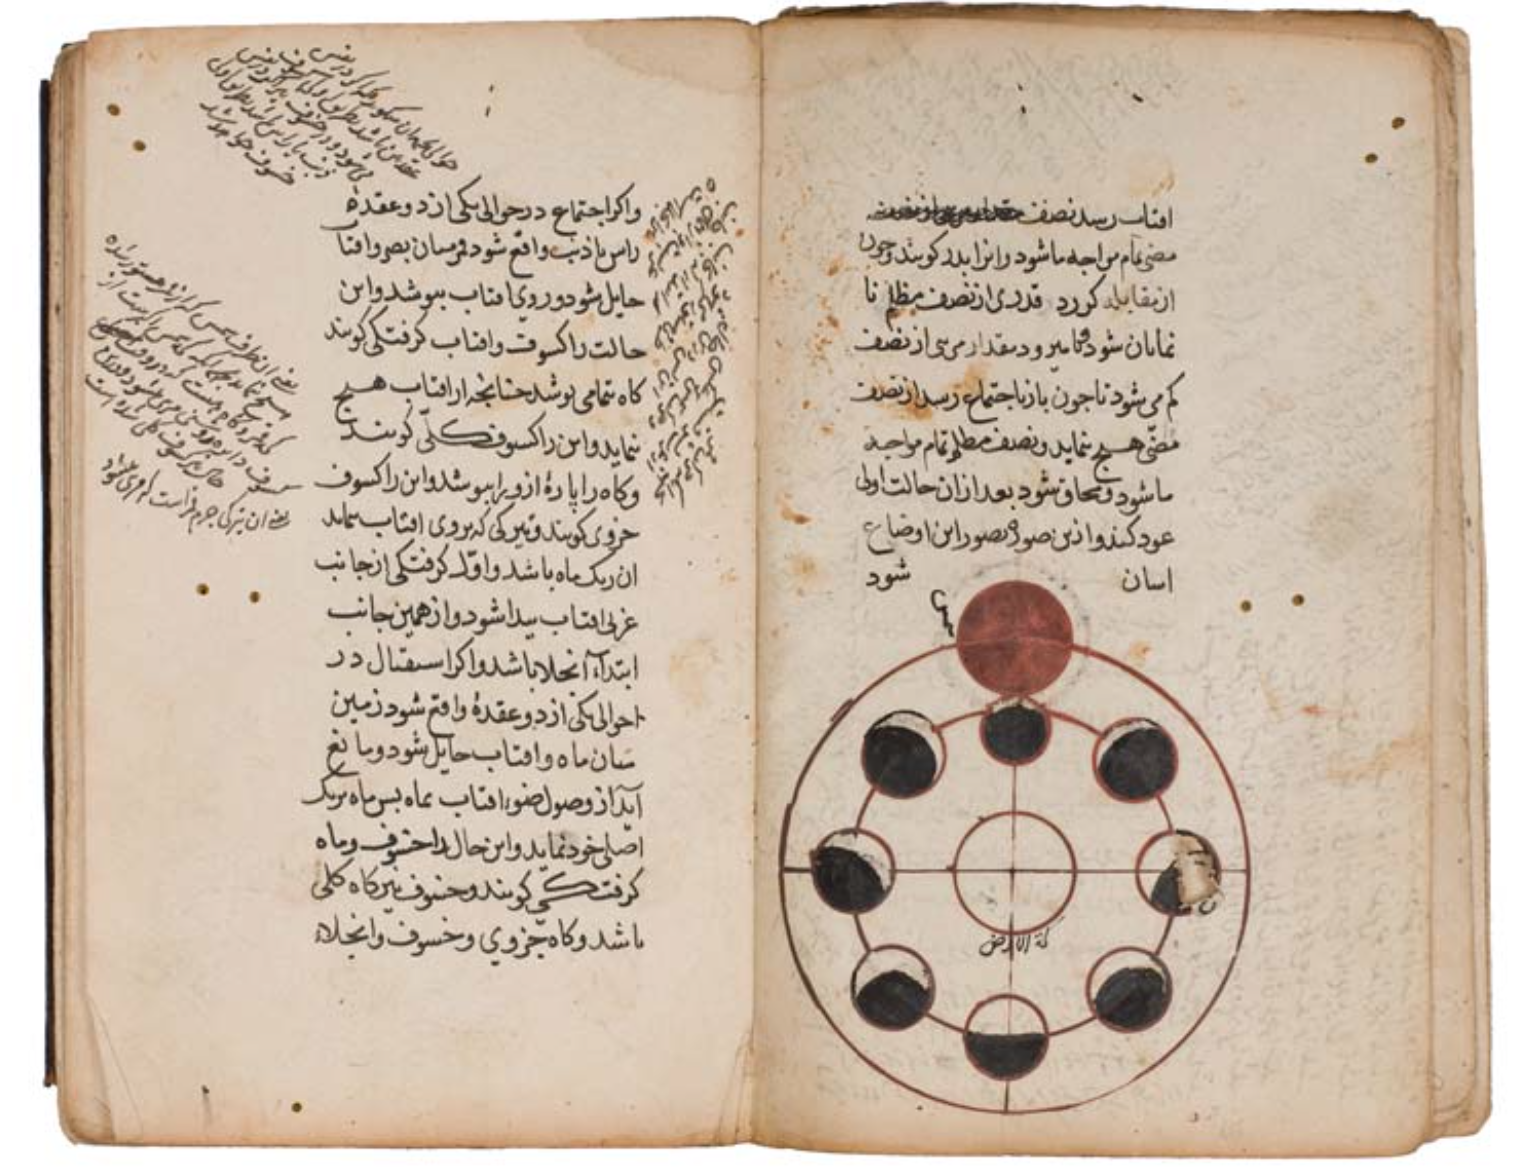 Illustrated Astronomical Treatise (2)